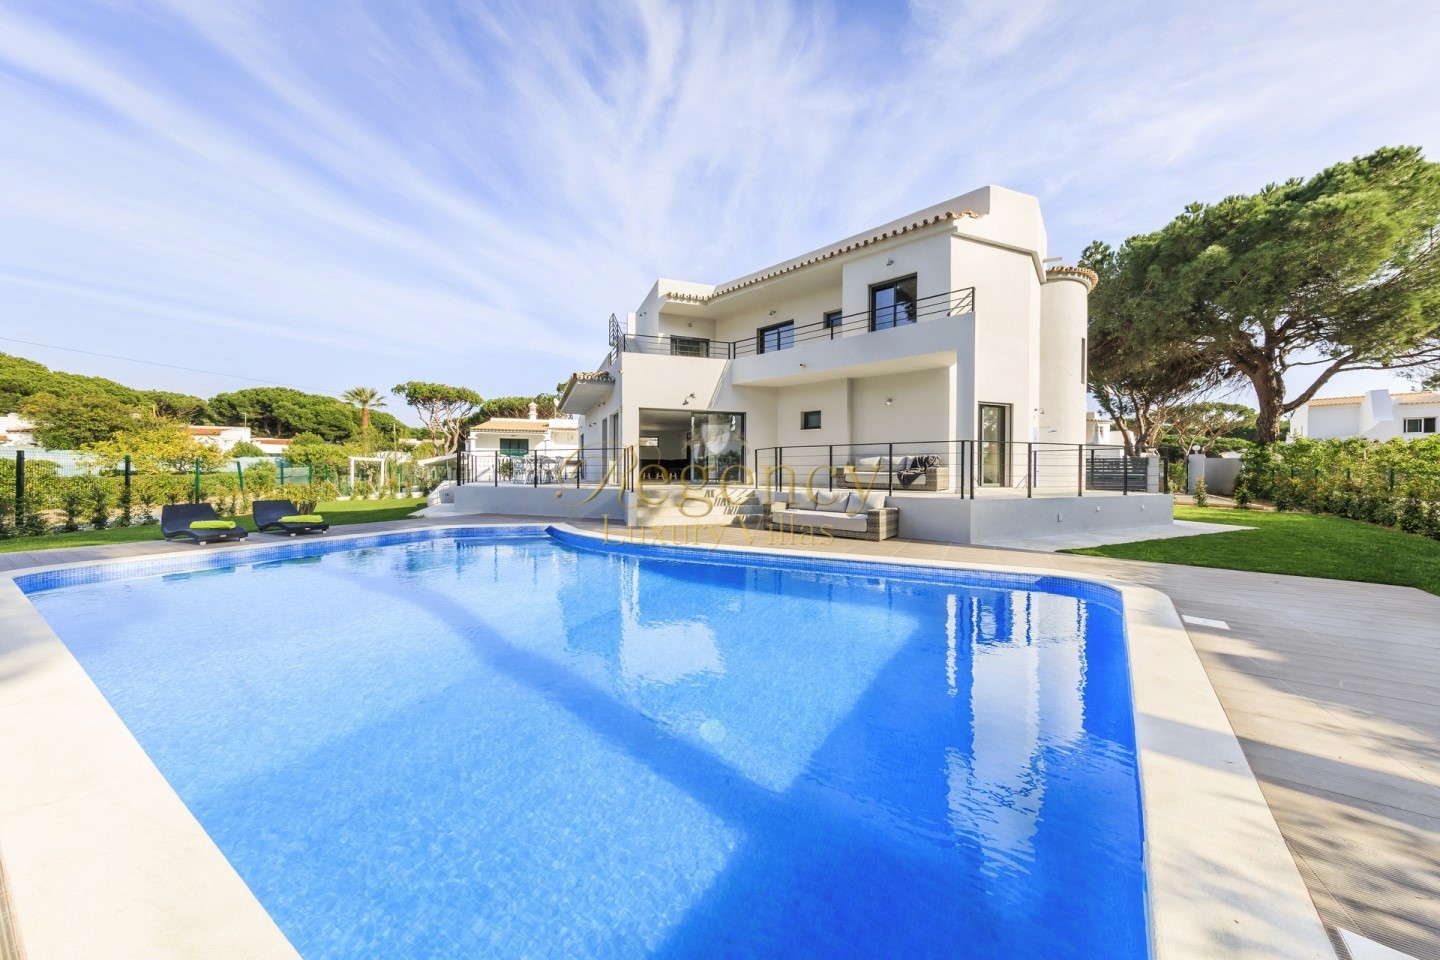 Villa To Rent With Private Swimming Pool In Vilamoura 4 Bedroom Luxury Villa RLV